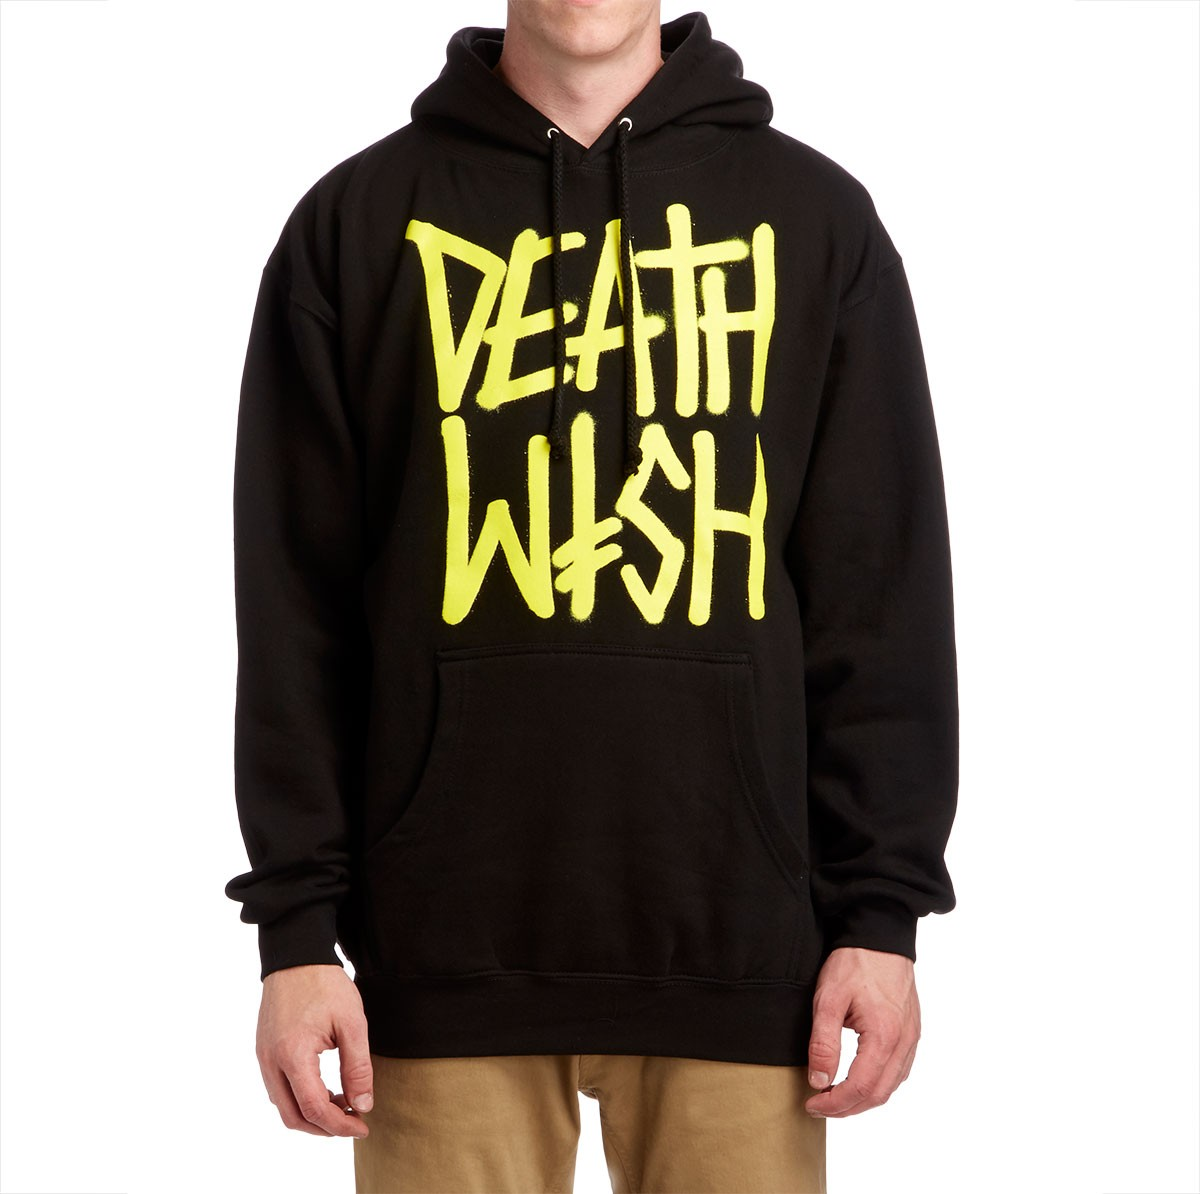 Deathwish Deathstack Pullover Hoodie - Black/Yellow